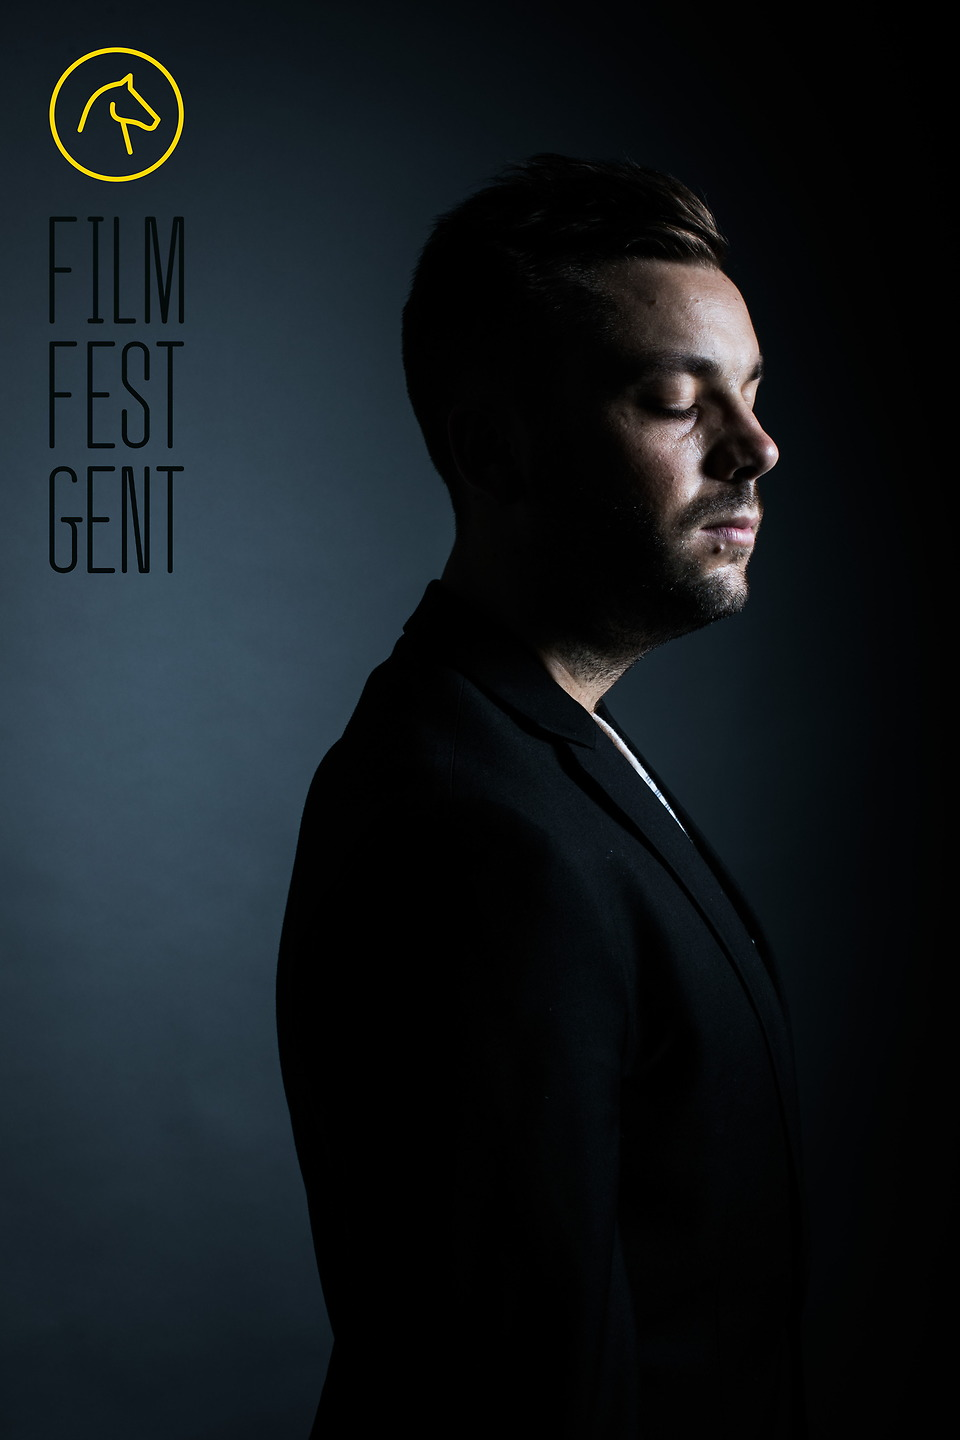 Film Fest Gent - Girl